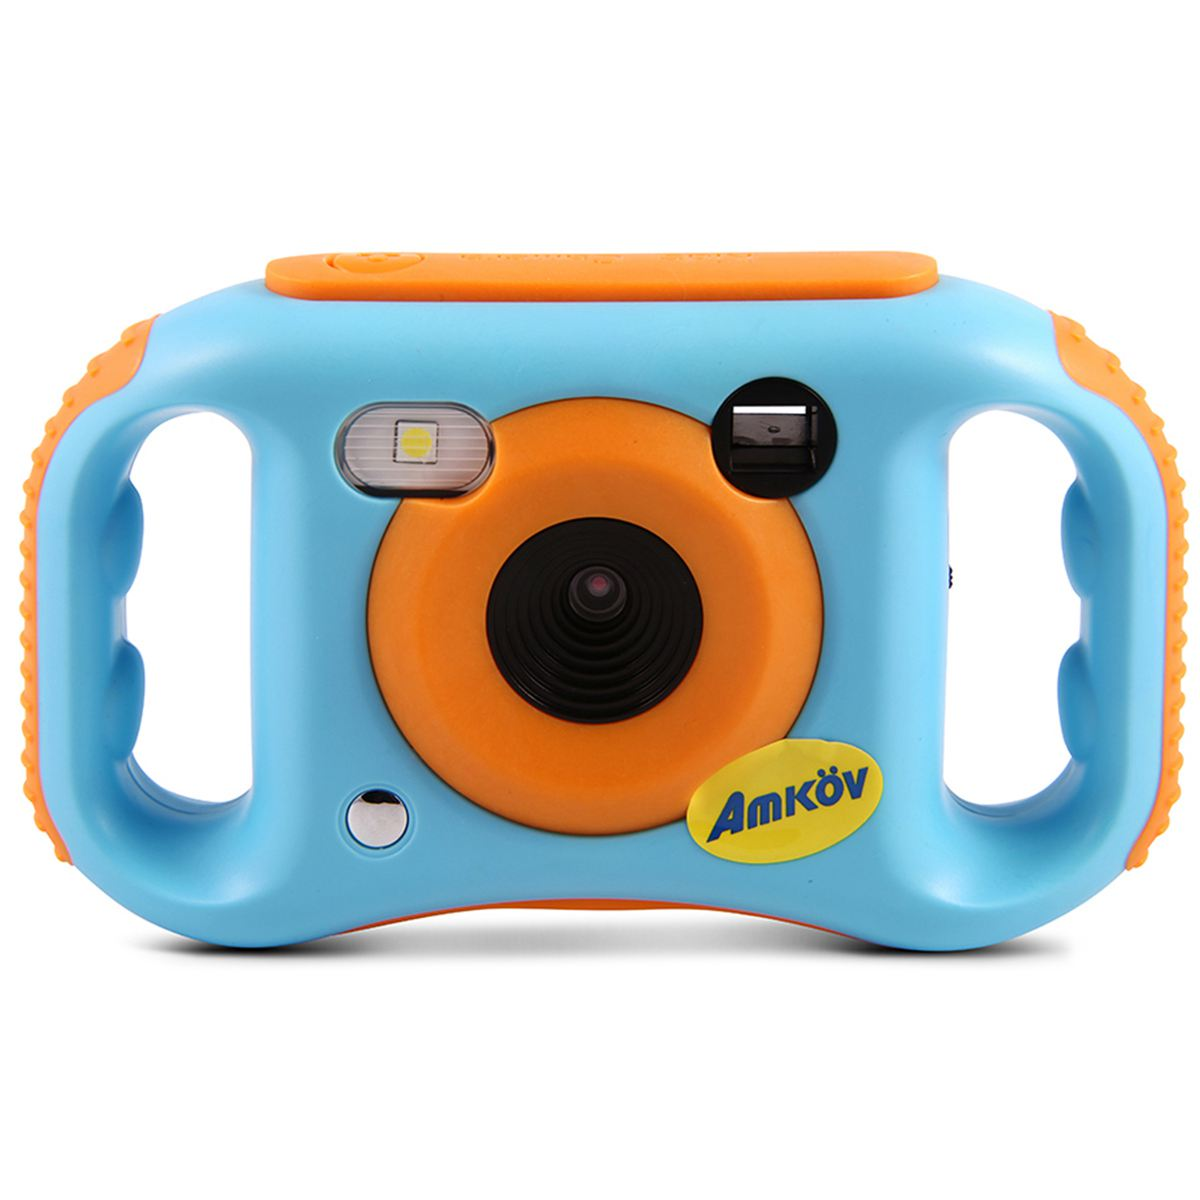 Amkov Kids Digital Video Camera WiFi Connection 5 Megapixels Gift For Children Boys Girls